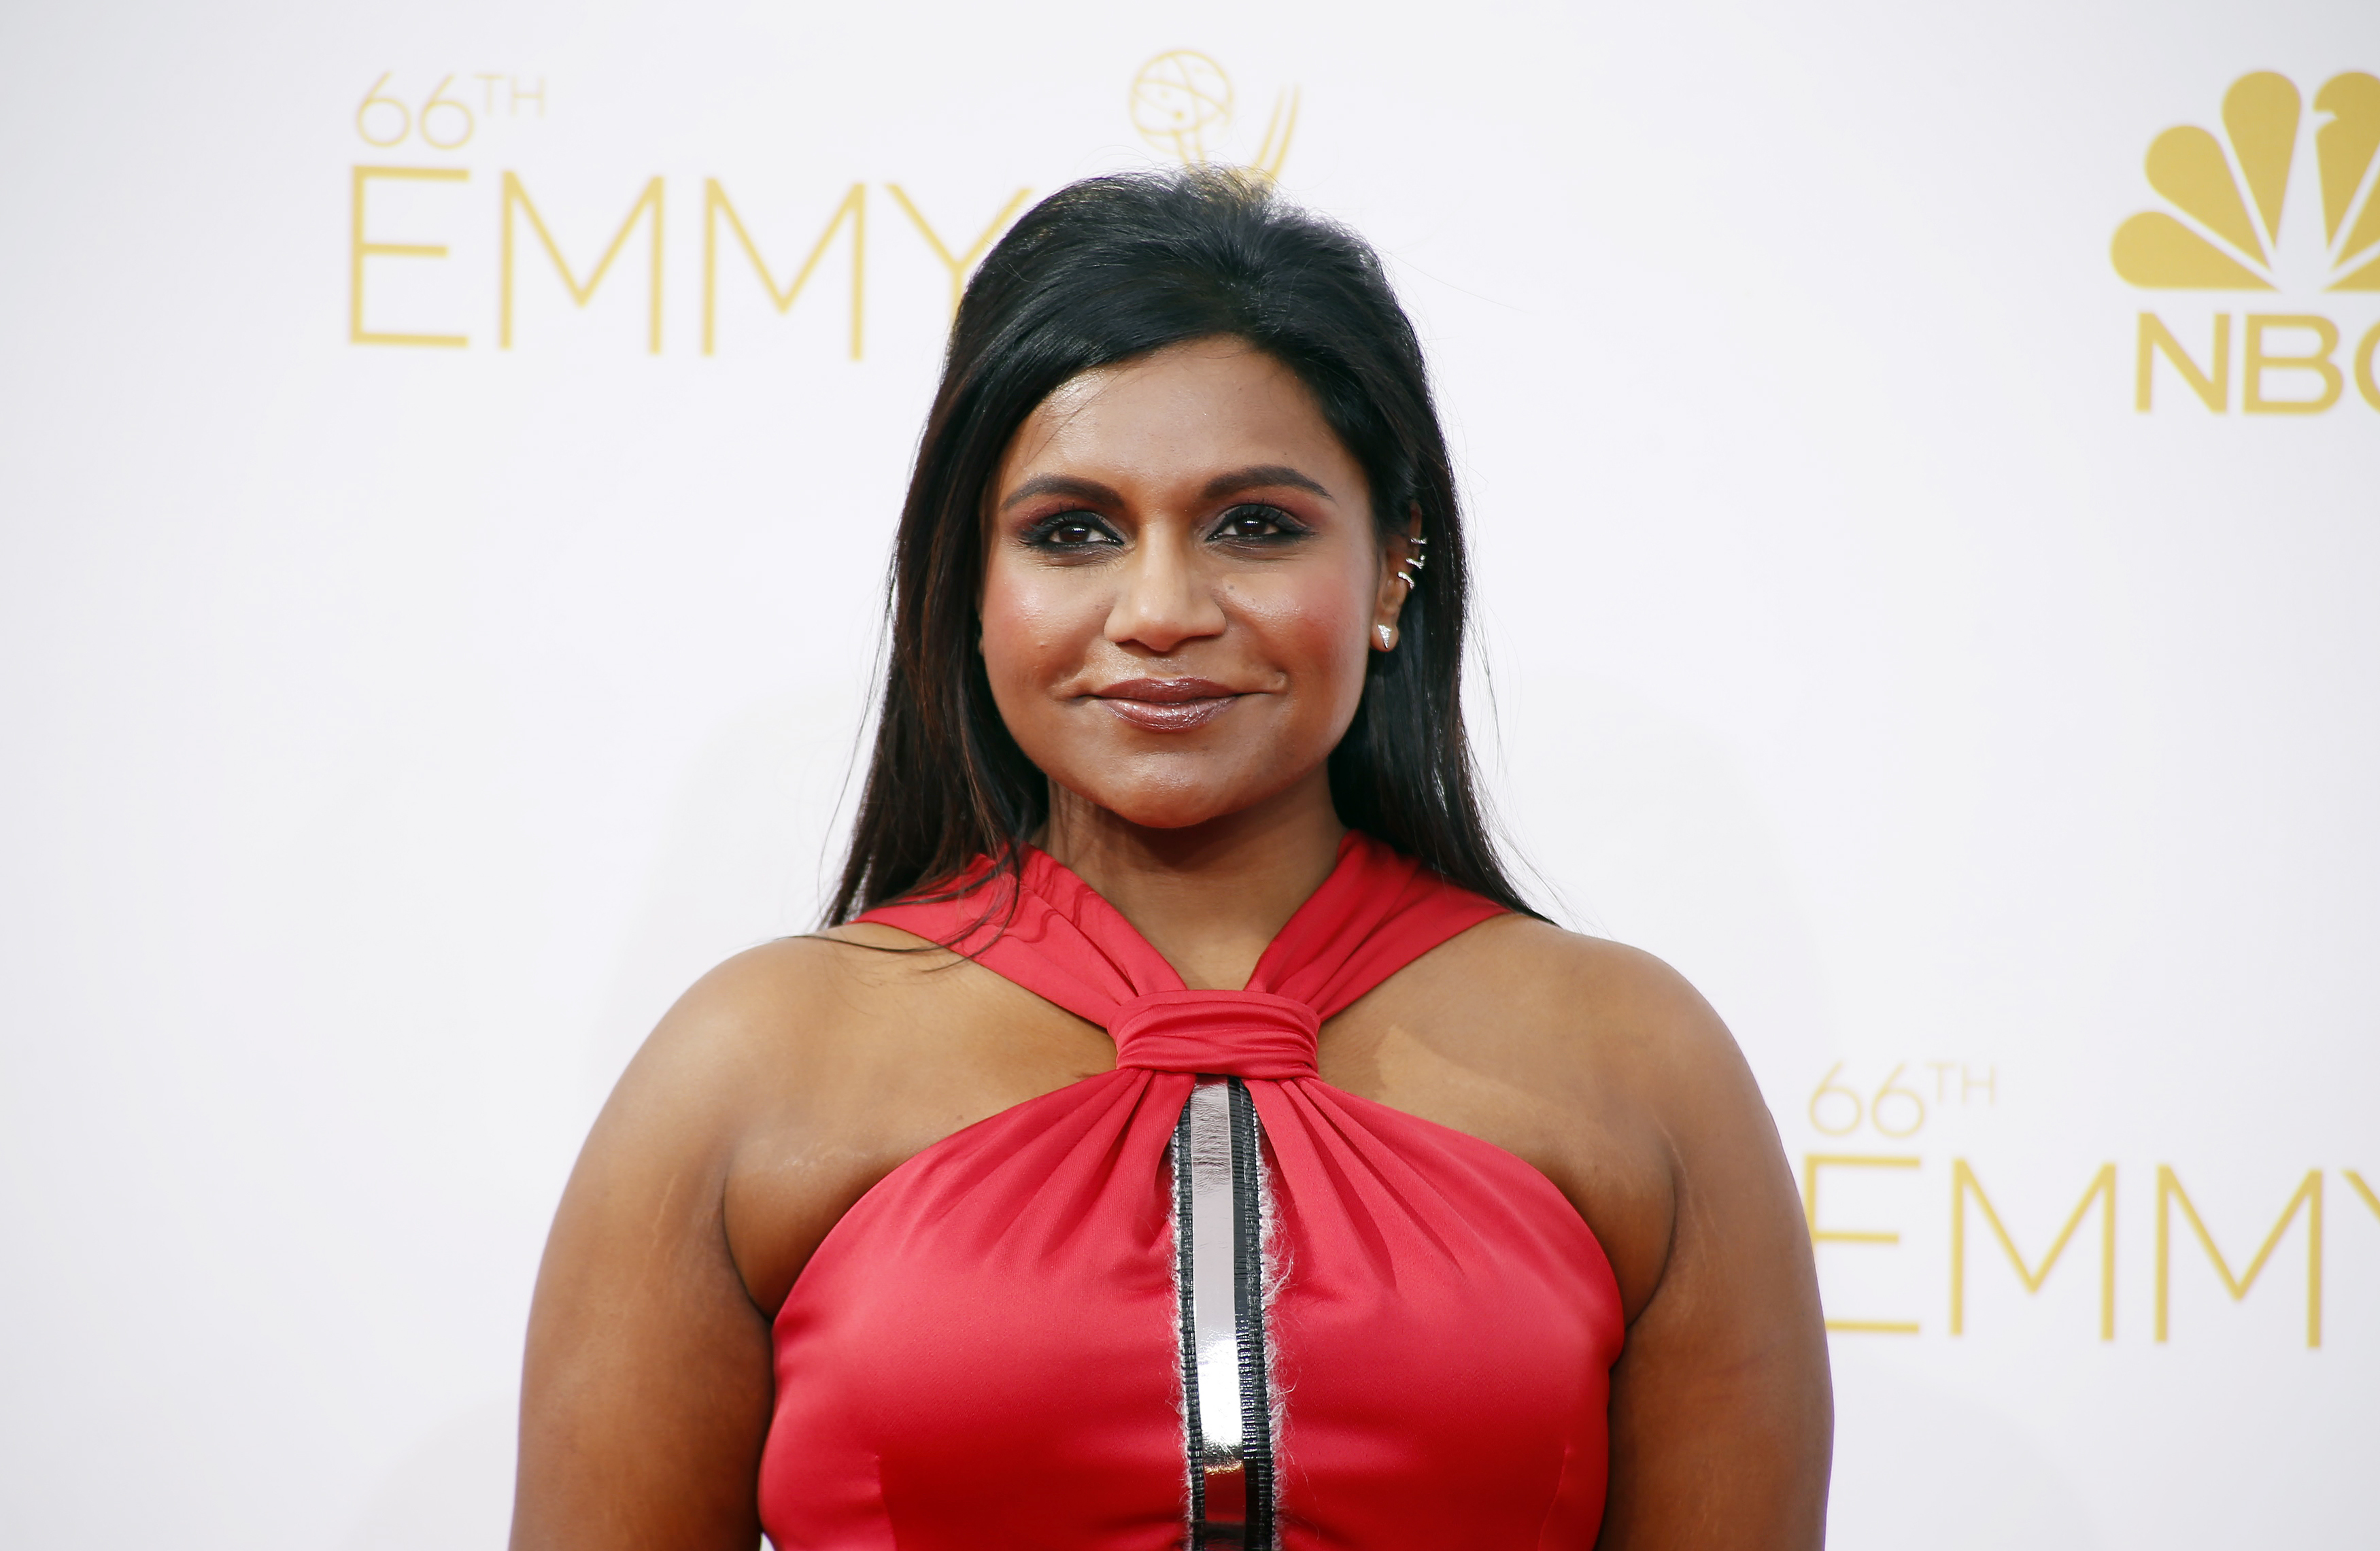 Mindy Kaling Wallpapers Images Photos Pictures Backgrounds 3500x2281